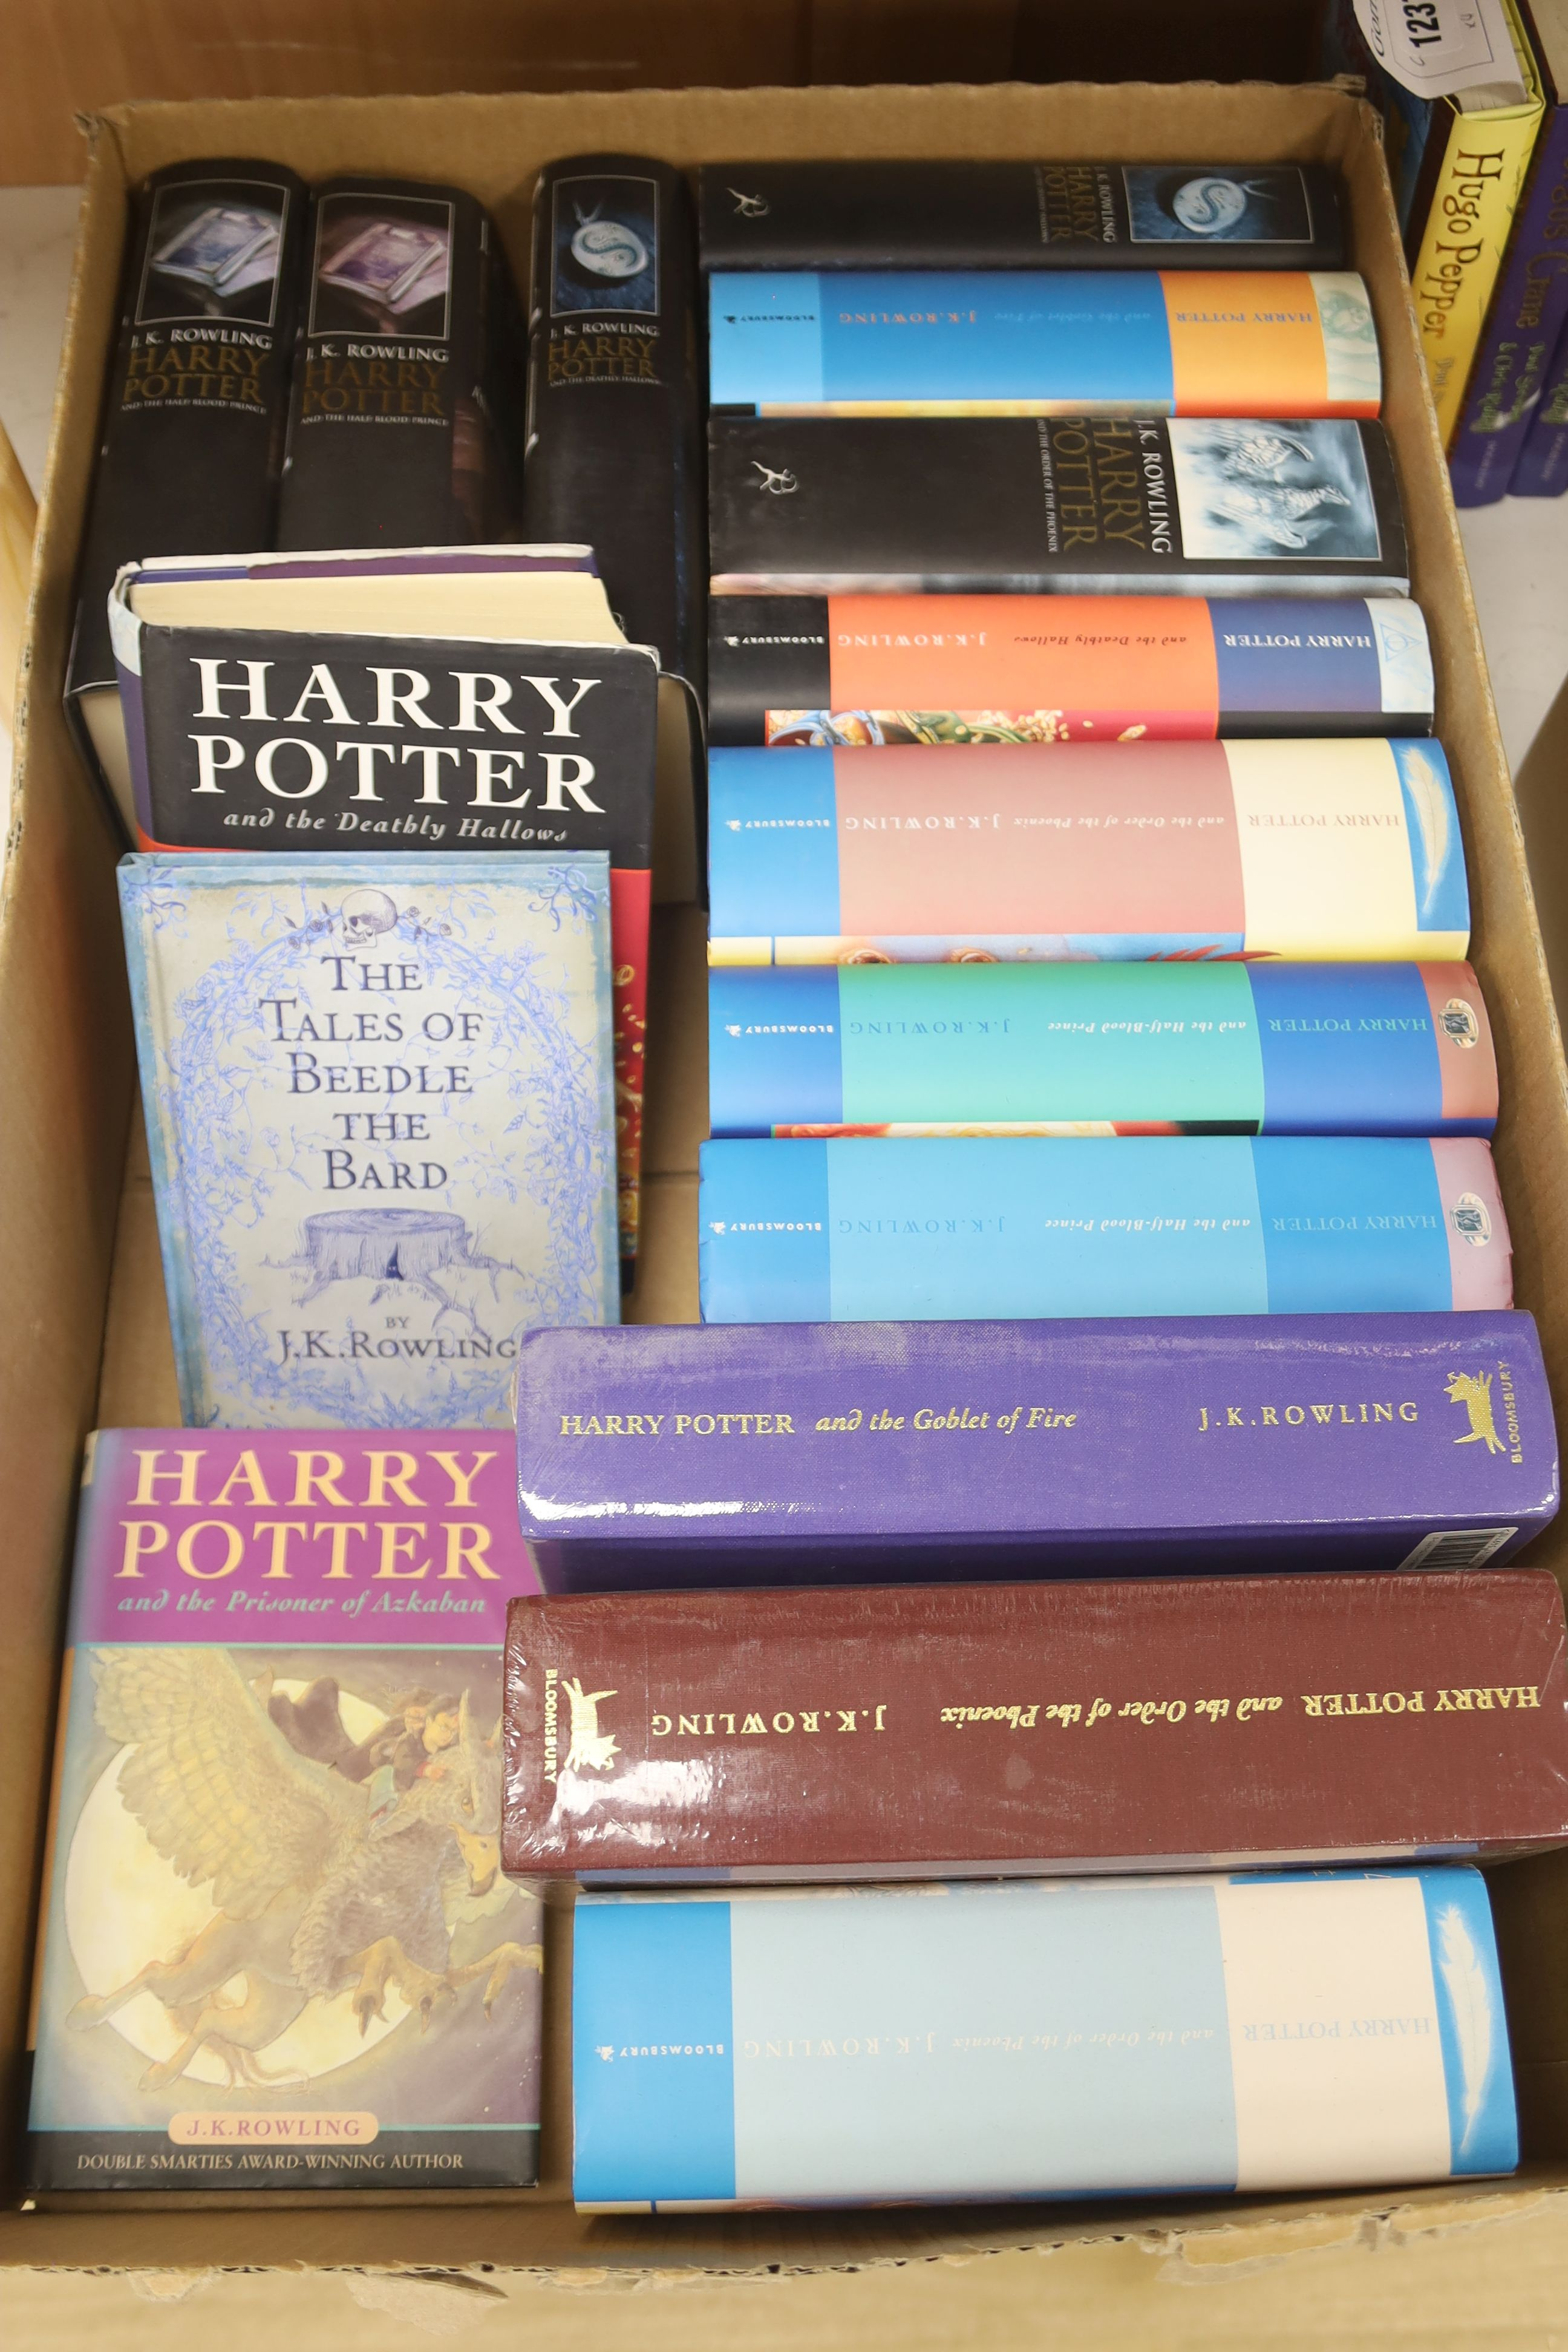 Rowling, J.K – A collection of Harry Potter editions:Prizoner of Azkaban, Bloomsbury 1999, second